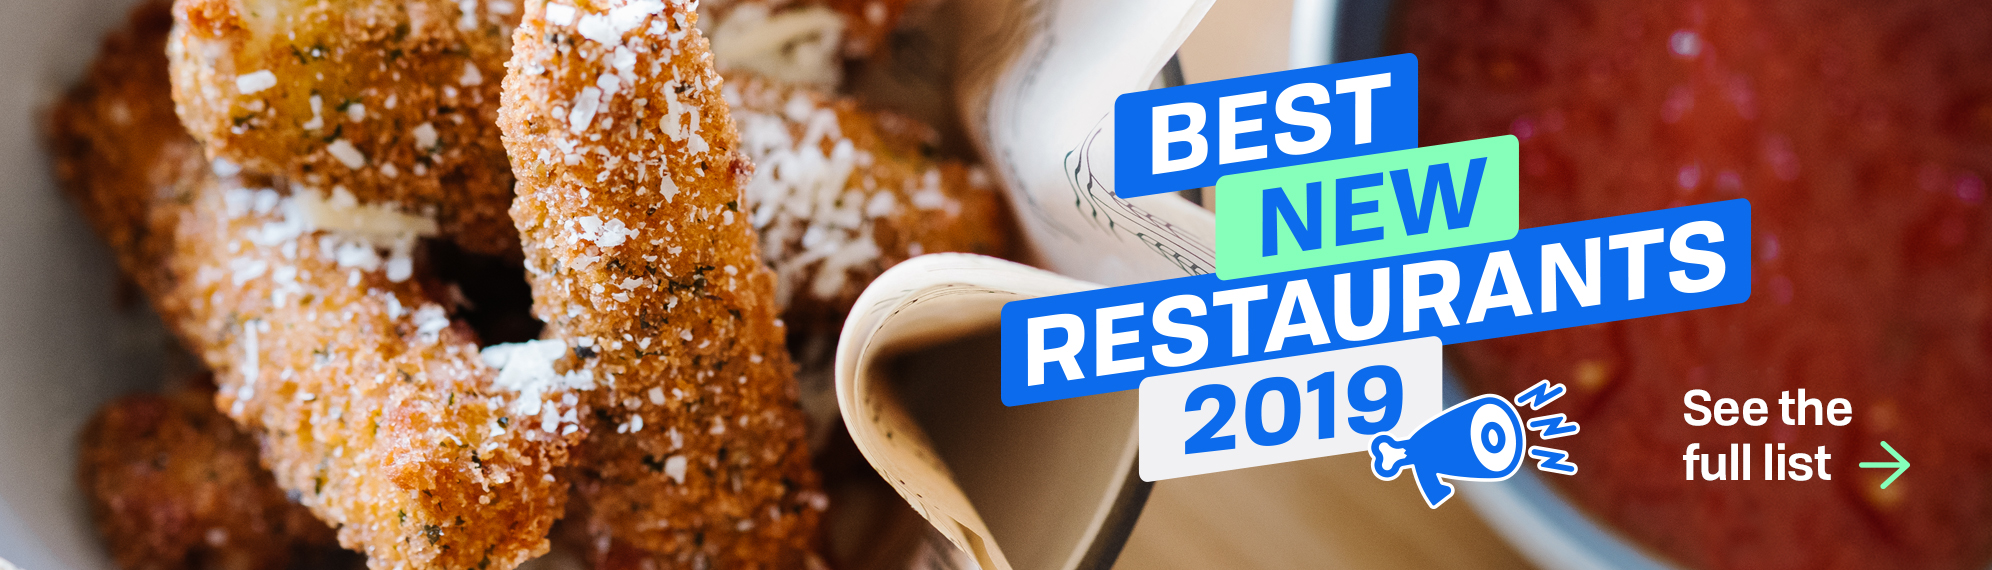 See the full list of San Francisco's Best Restaurants Of 2019.